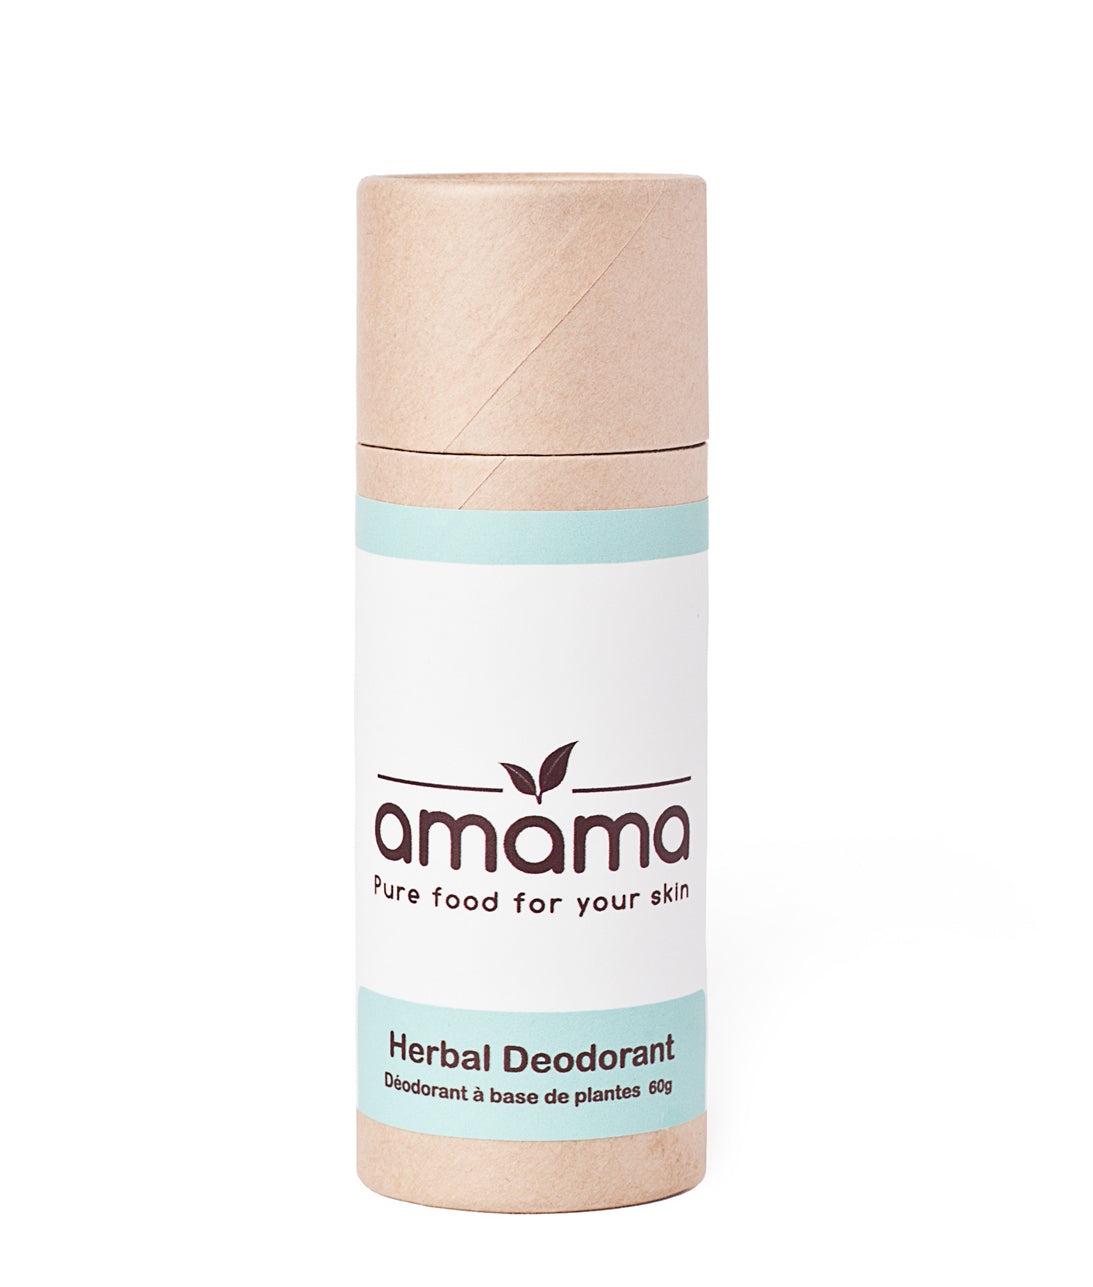 HERBAL DEODORANT, Amama by Margaret Norcott